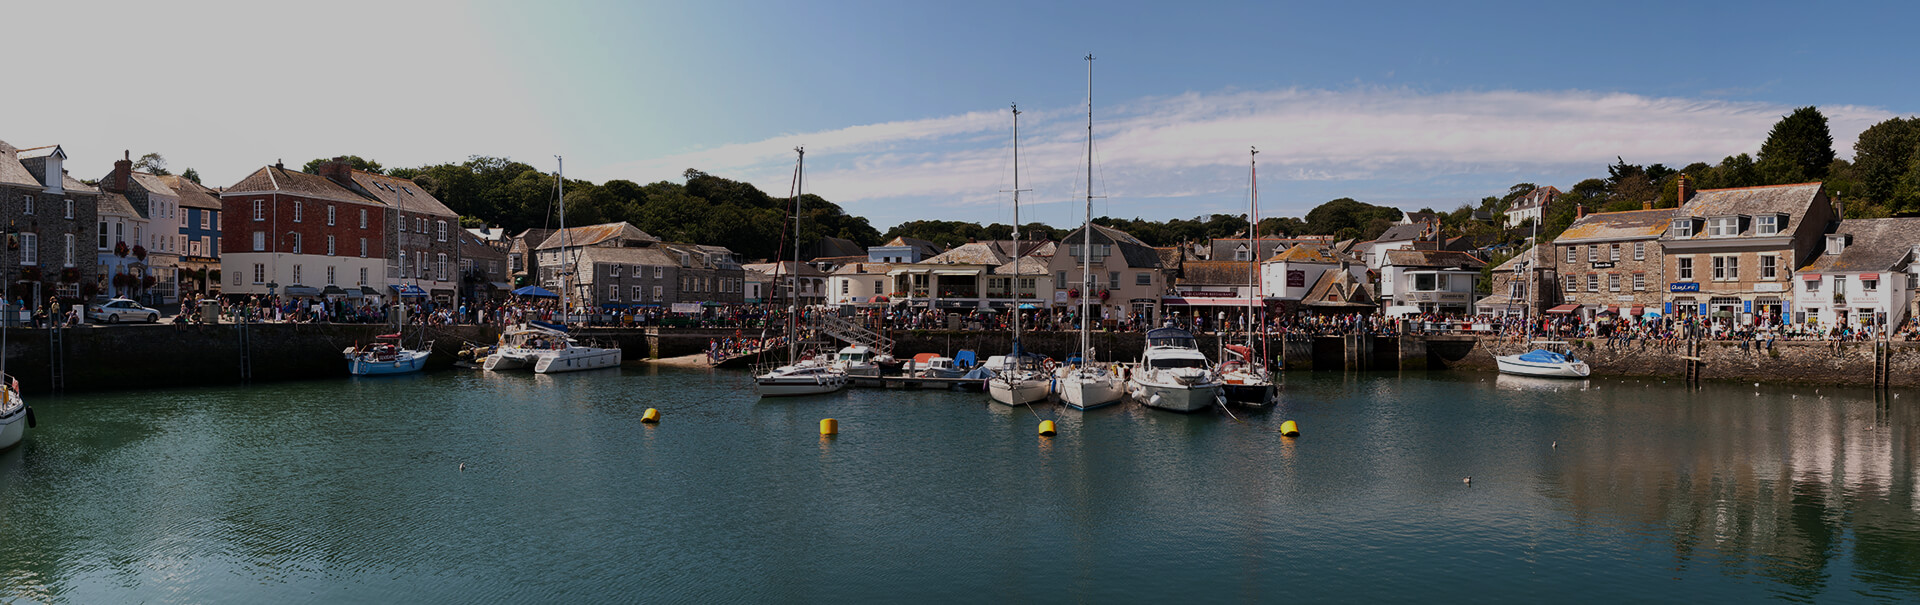 Self Catering cottages, Padstow